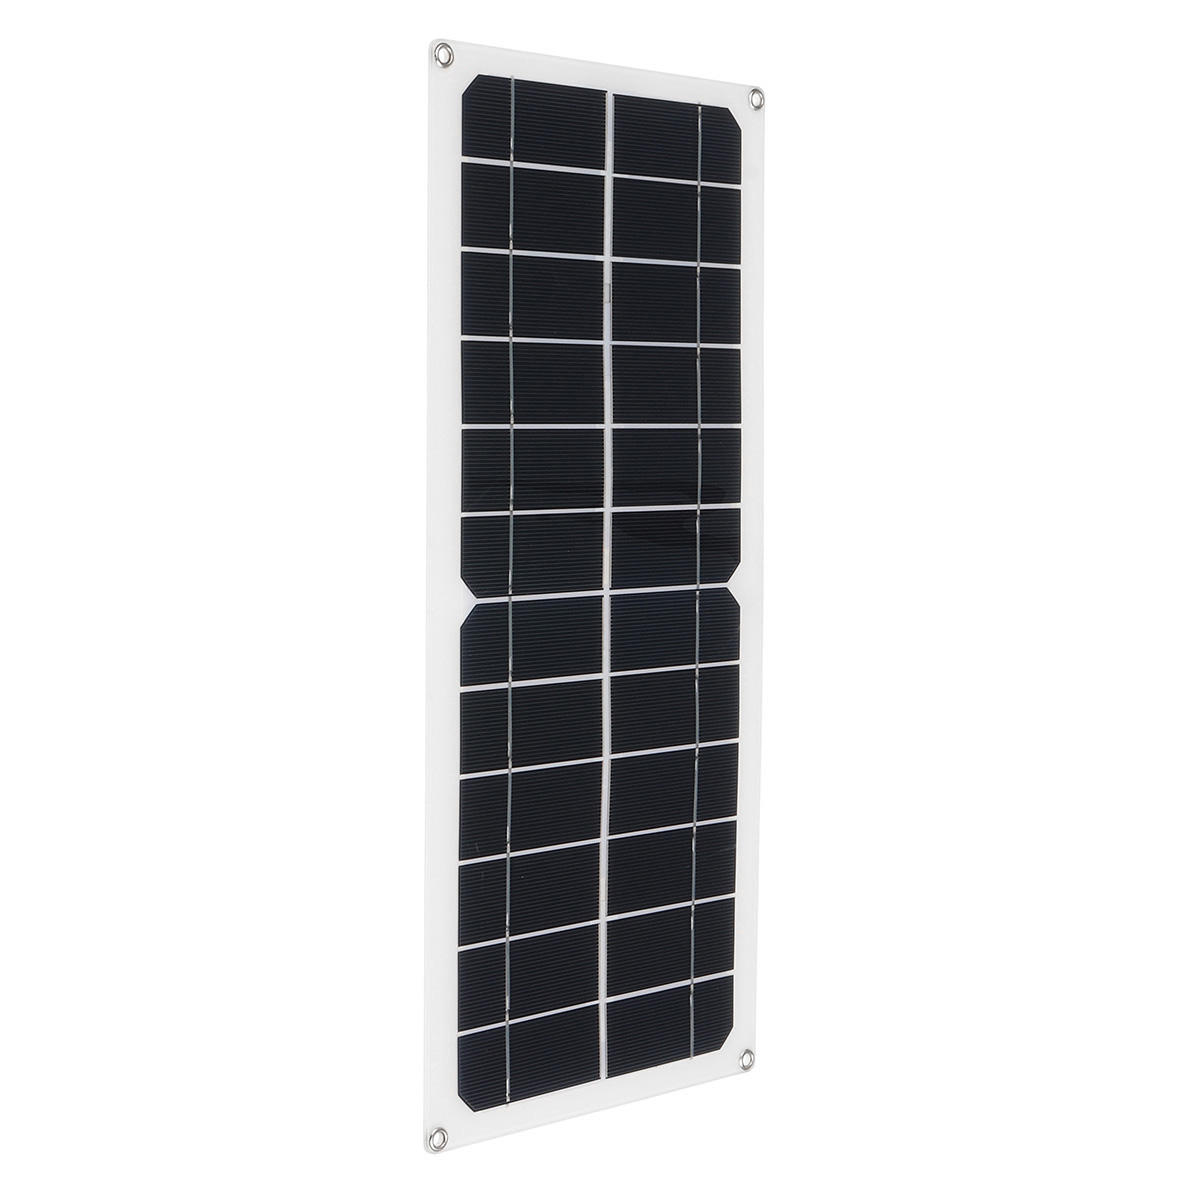 Efficient Solar Powered System 40W Dual USB Ports Solar Panel & 2000W Power Inverter & 10A Controller - 3